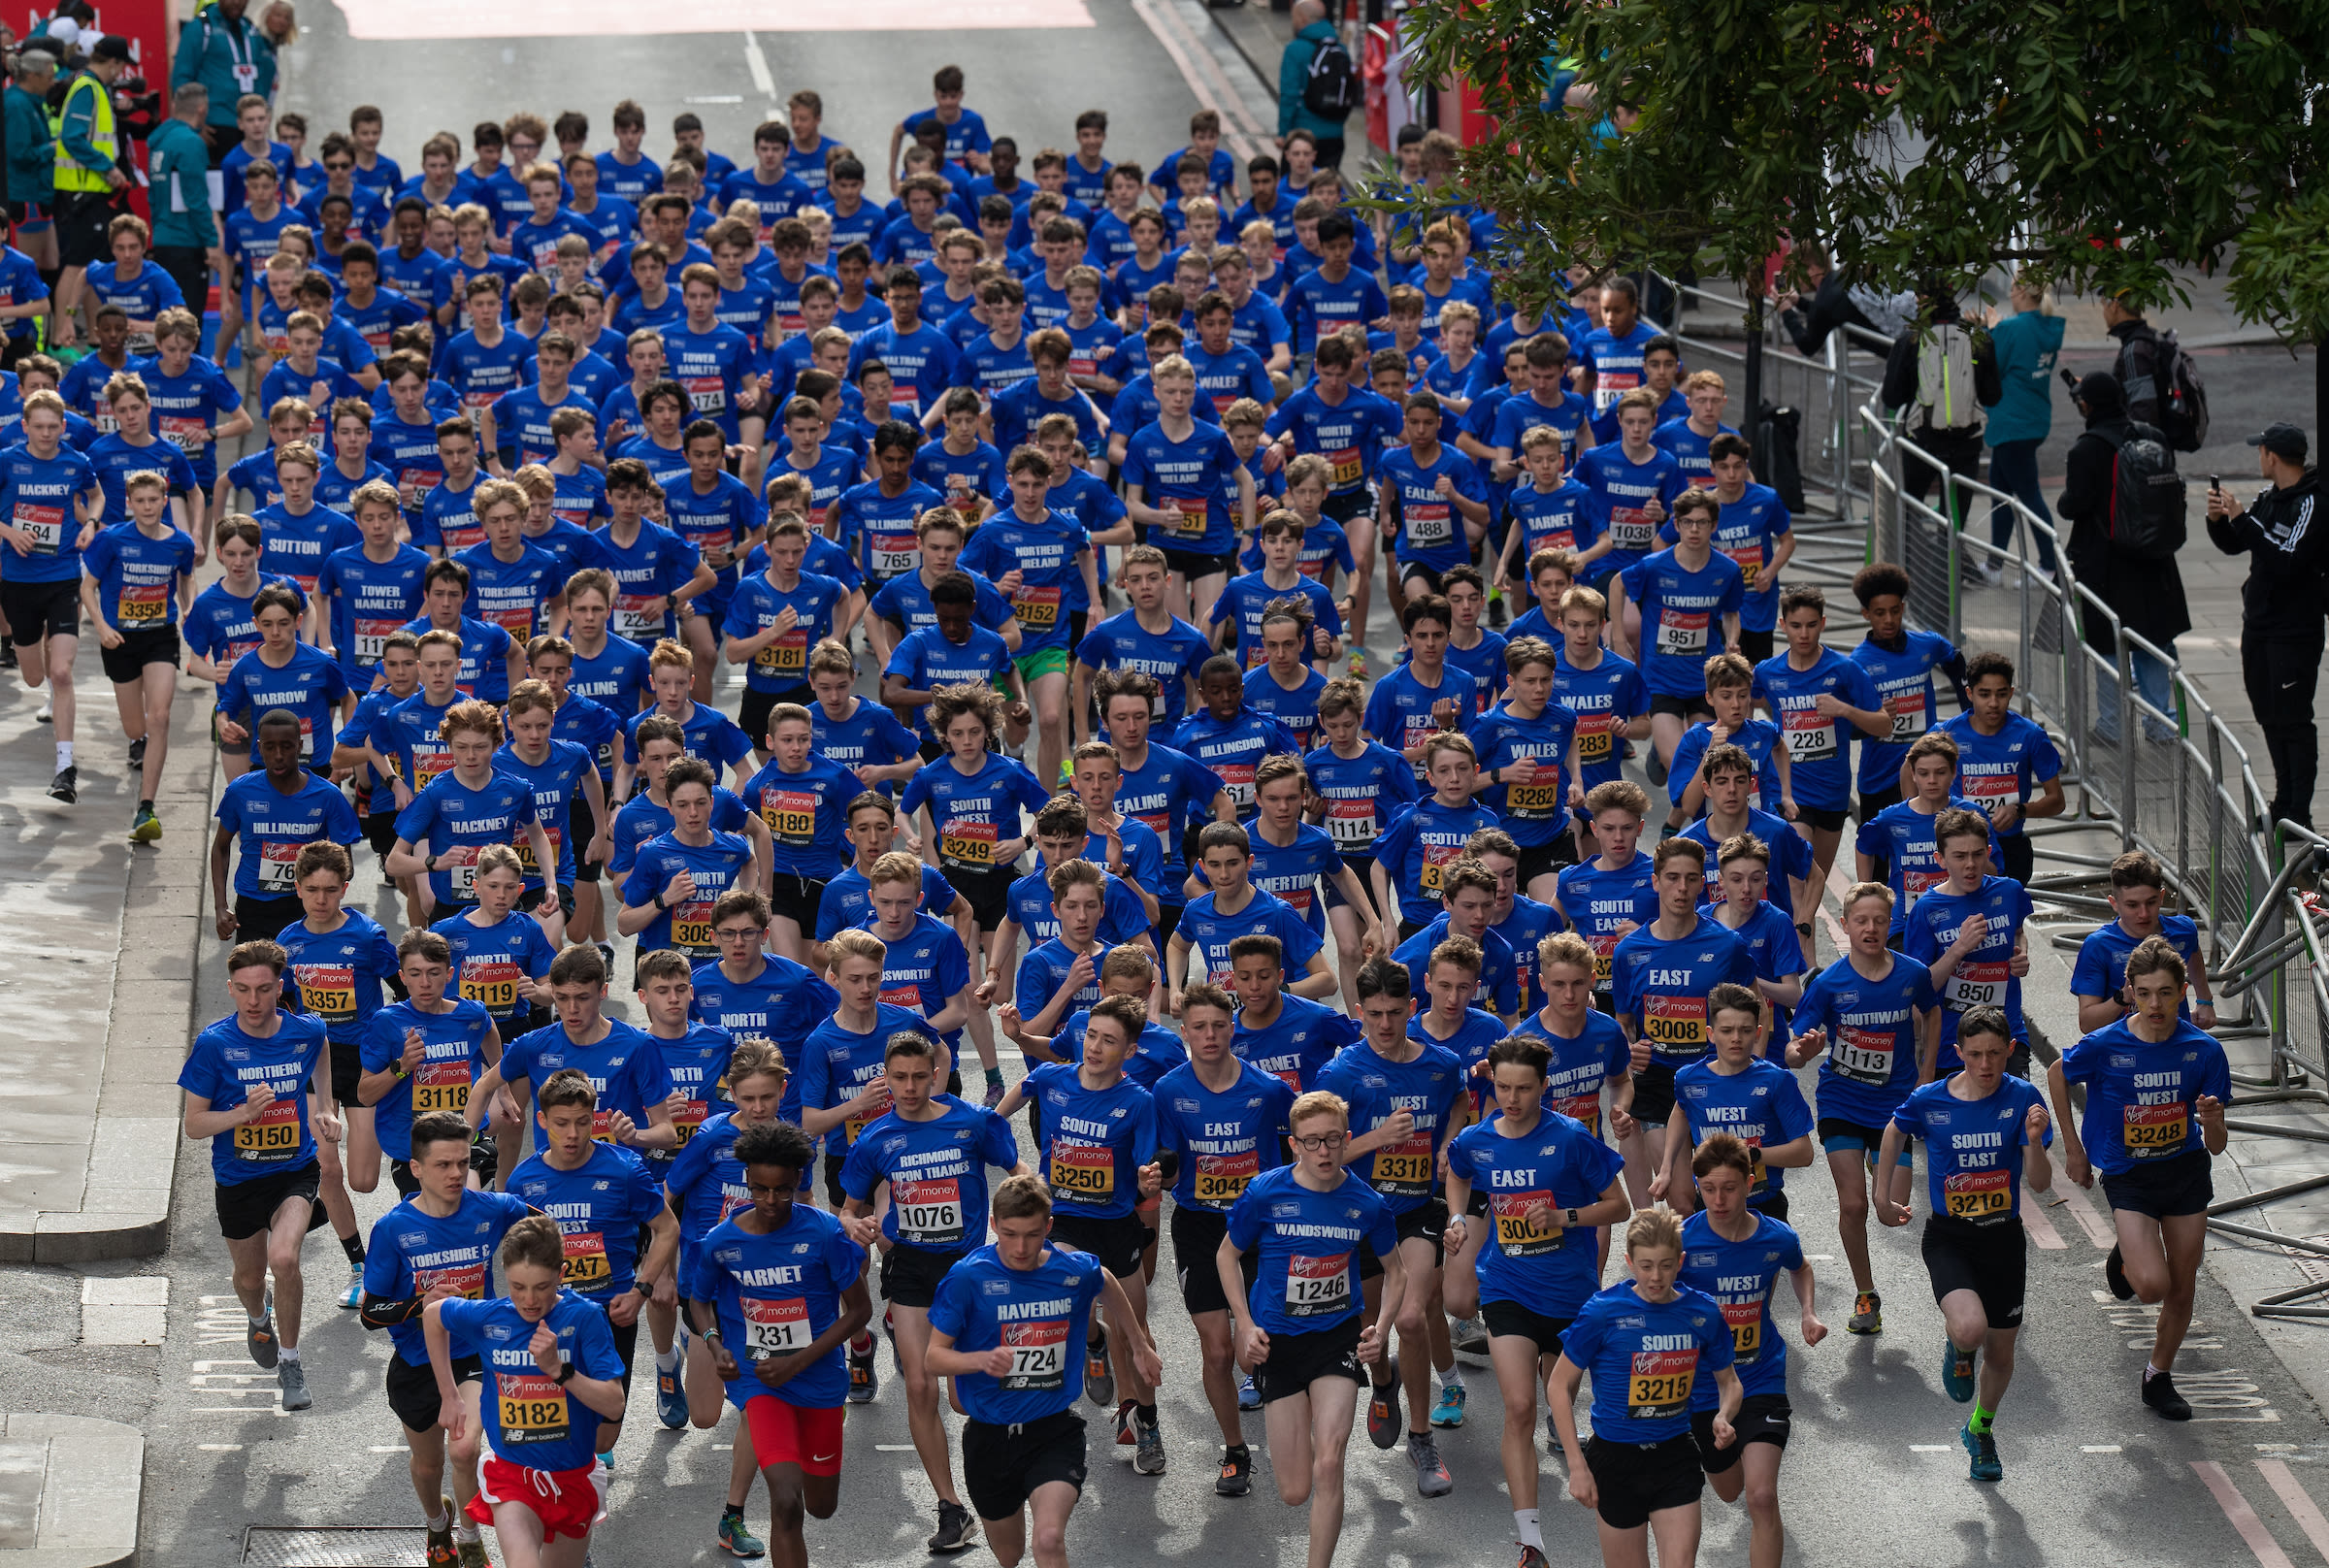 A crowd of school boys wearing blue t-shirts run in the Virgin Money Giving Mini London Marathon 2019